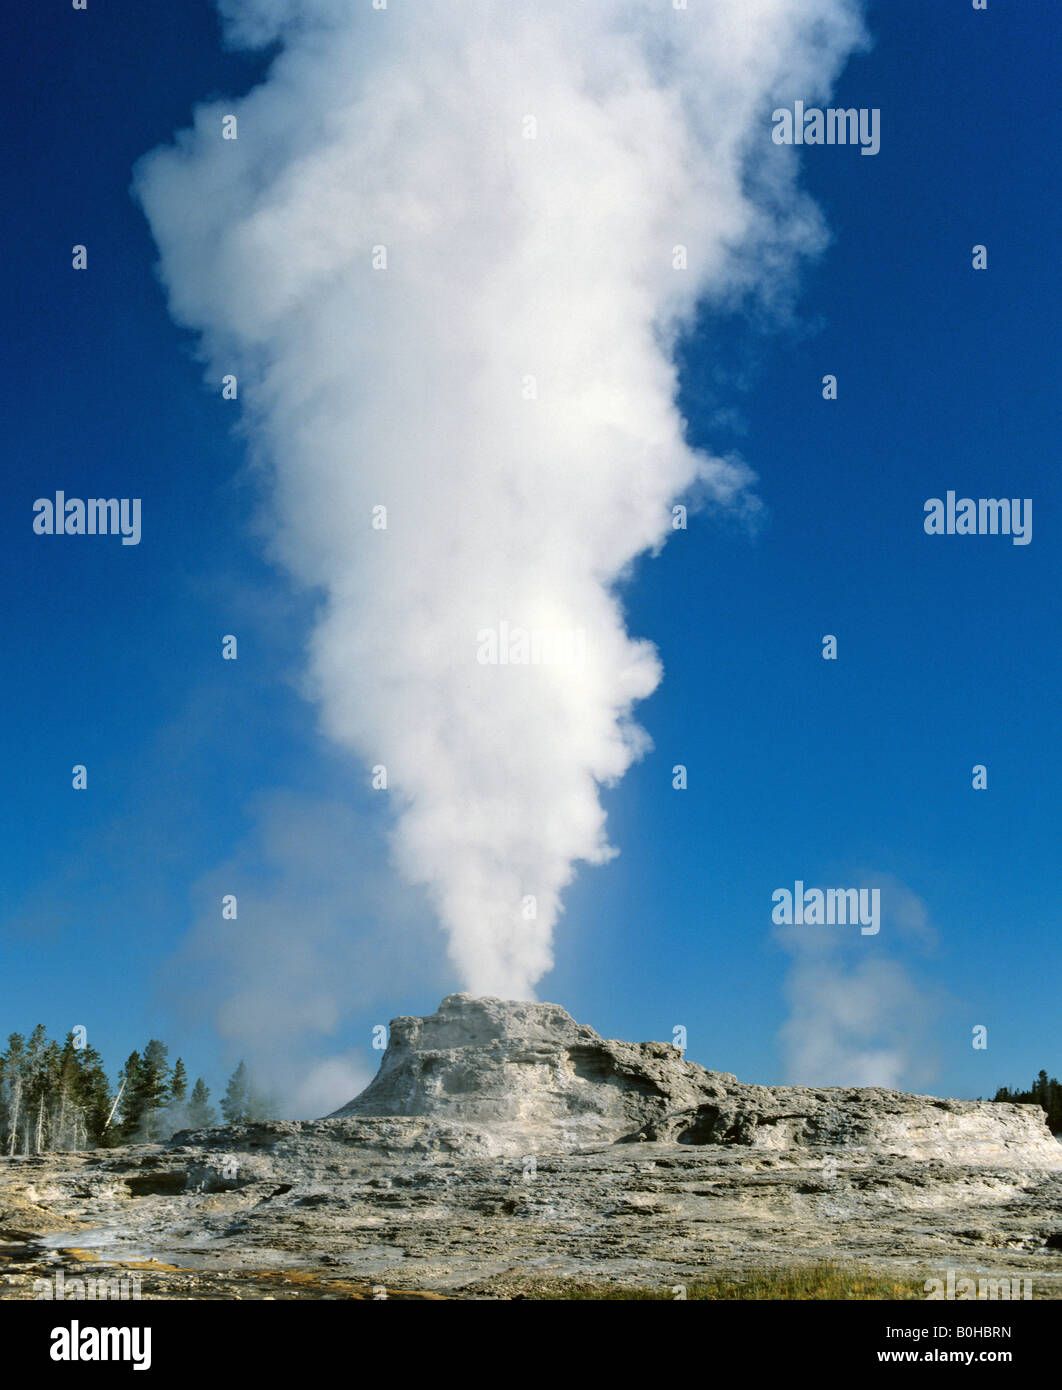 Steam rising from Castle Geyser, Yellowstone National Park, Rocky Mountains, Wyoming, USA - Stock Image